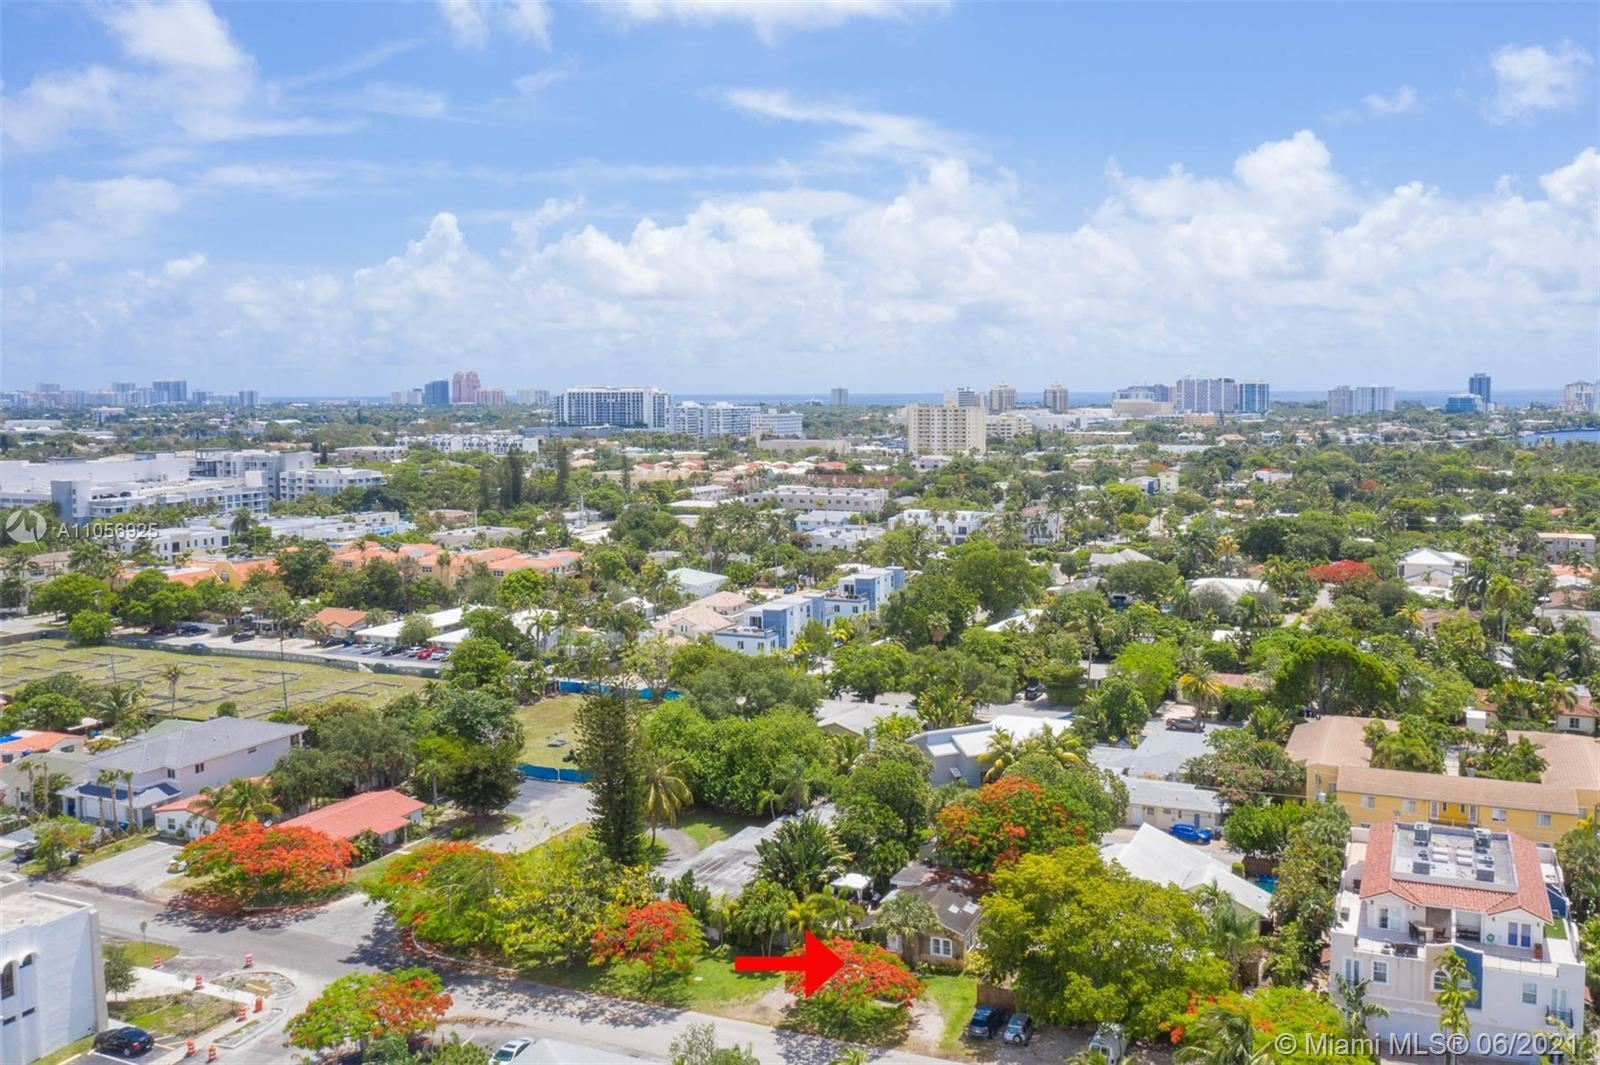 Photo of 740 NE 15th Ave, Fort Lauderdale, FL 33304 (MLS # A11056925)